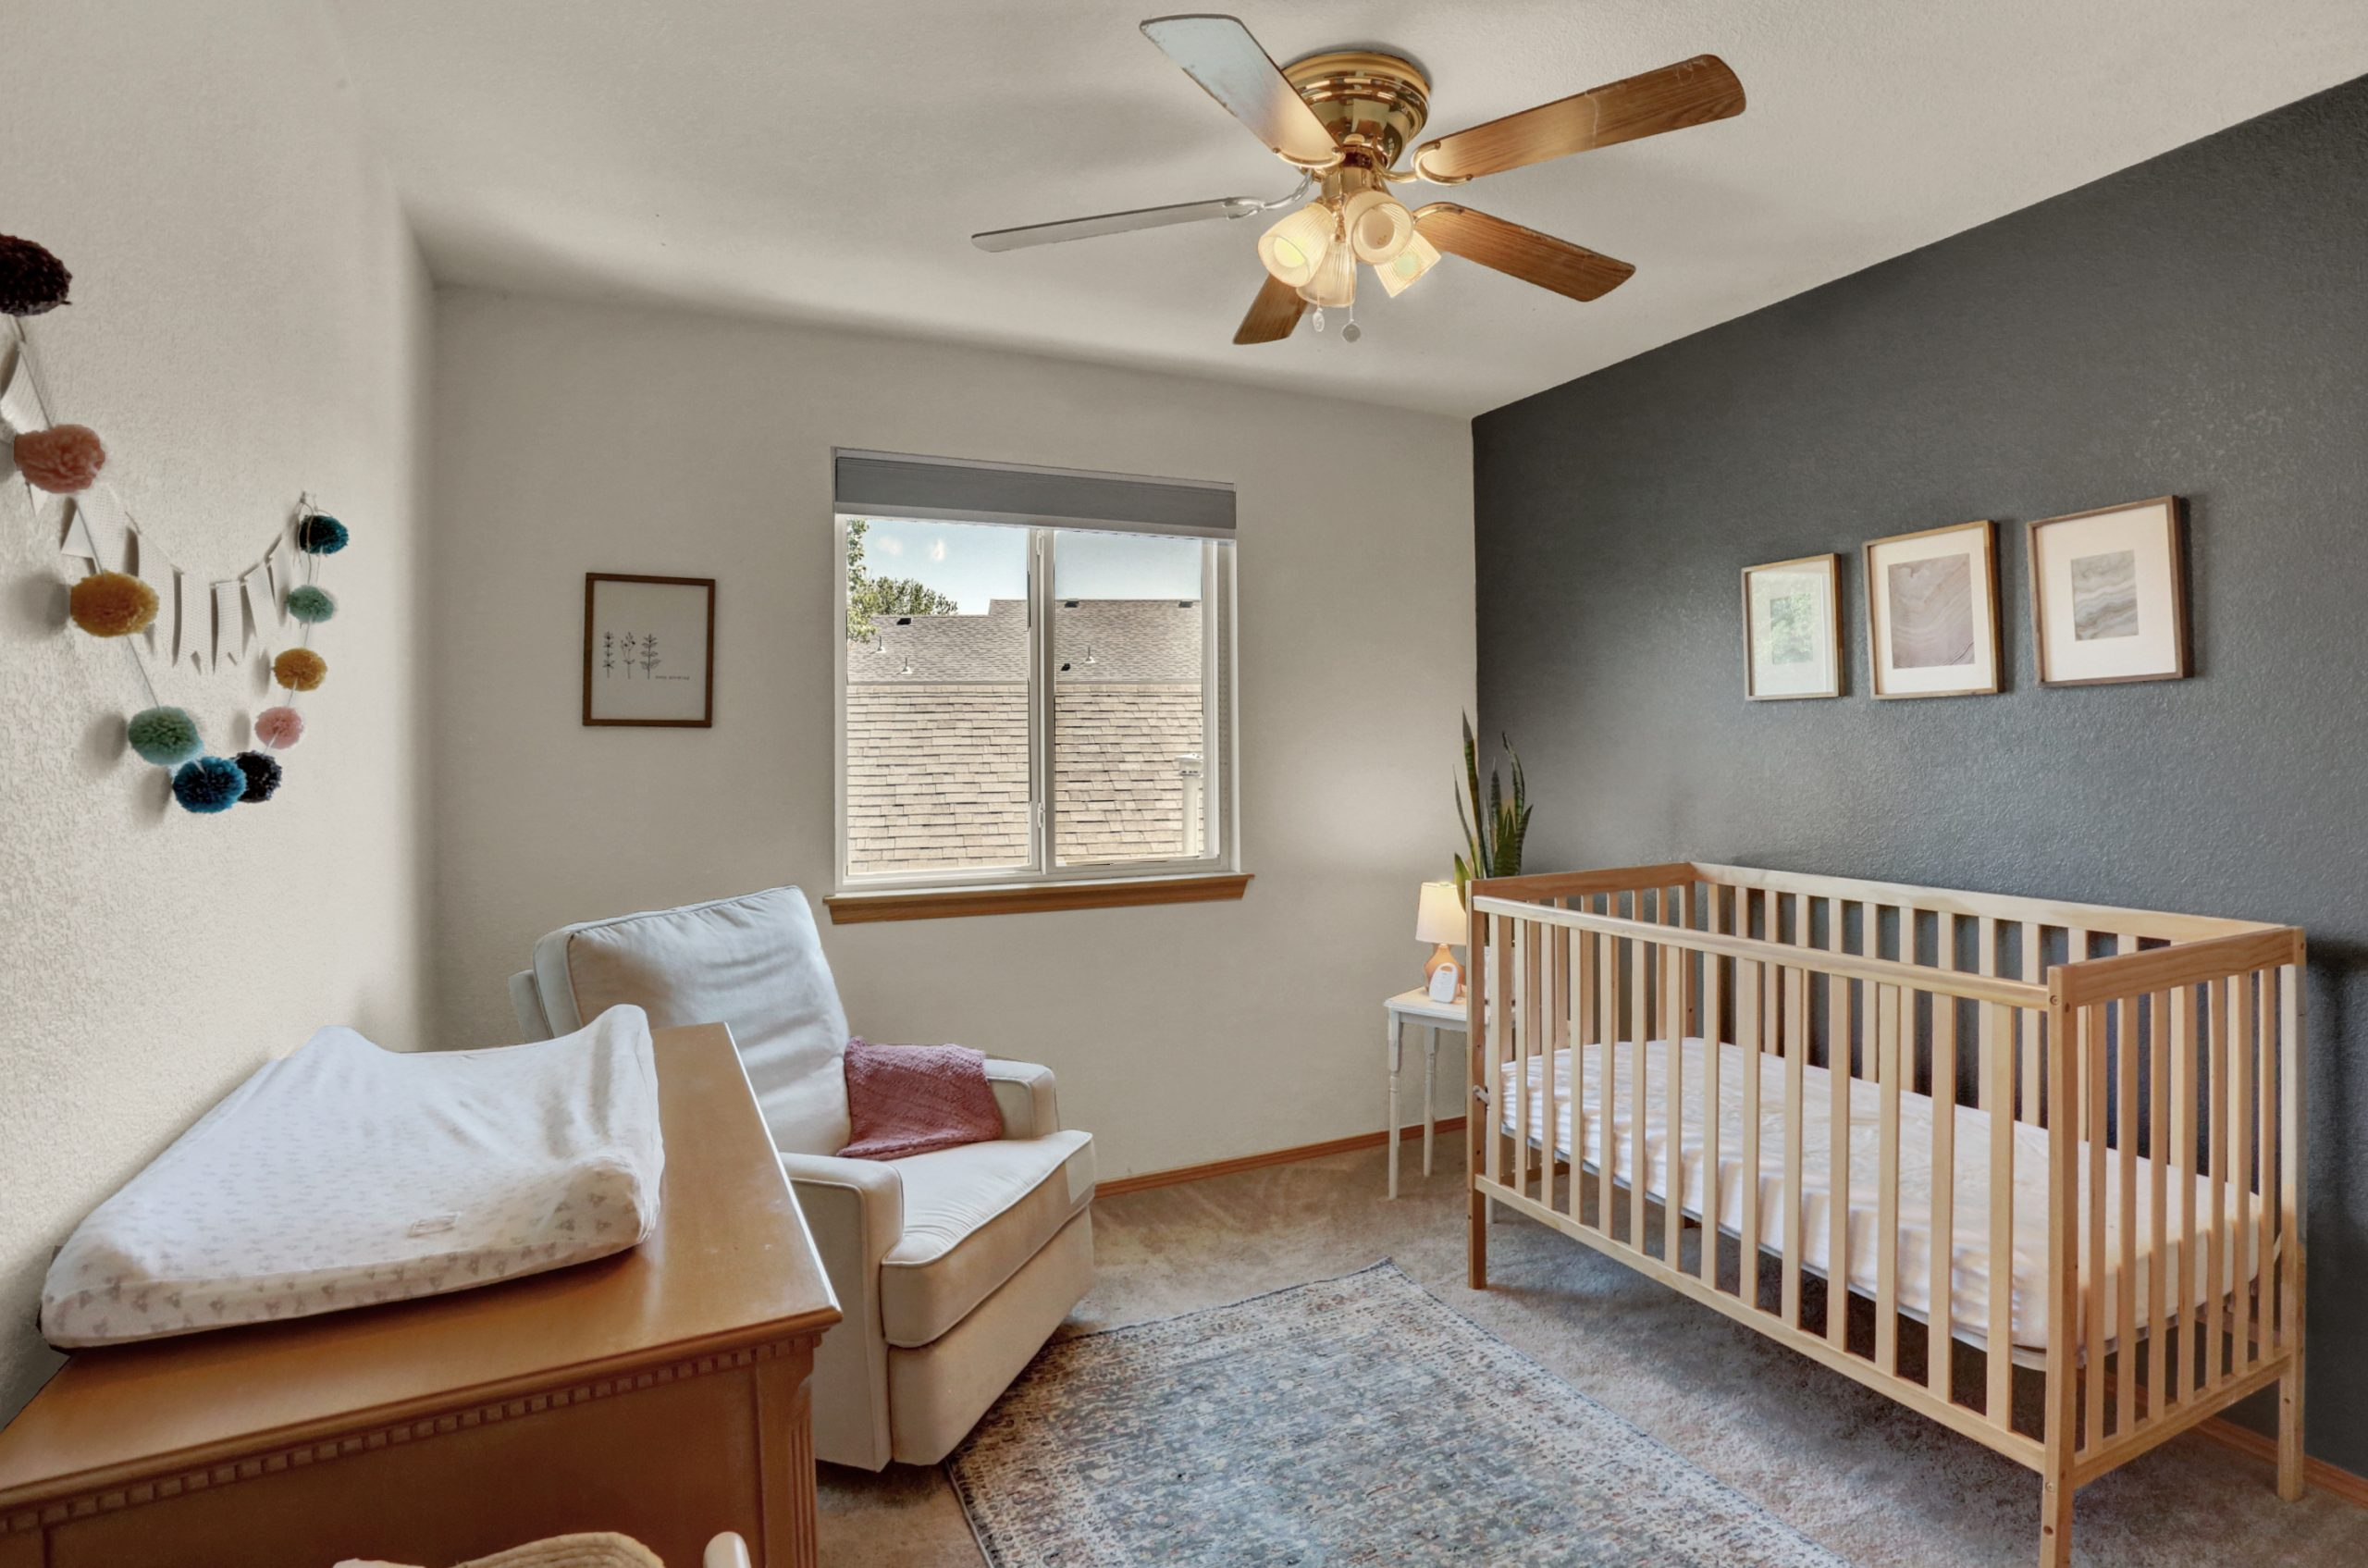 REAL ESTATE LISTING: 10502 Falcon St Firestone Bedroom #4